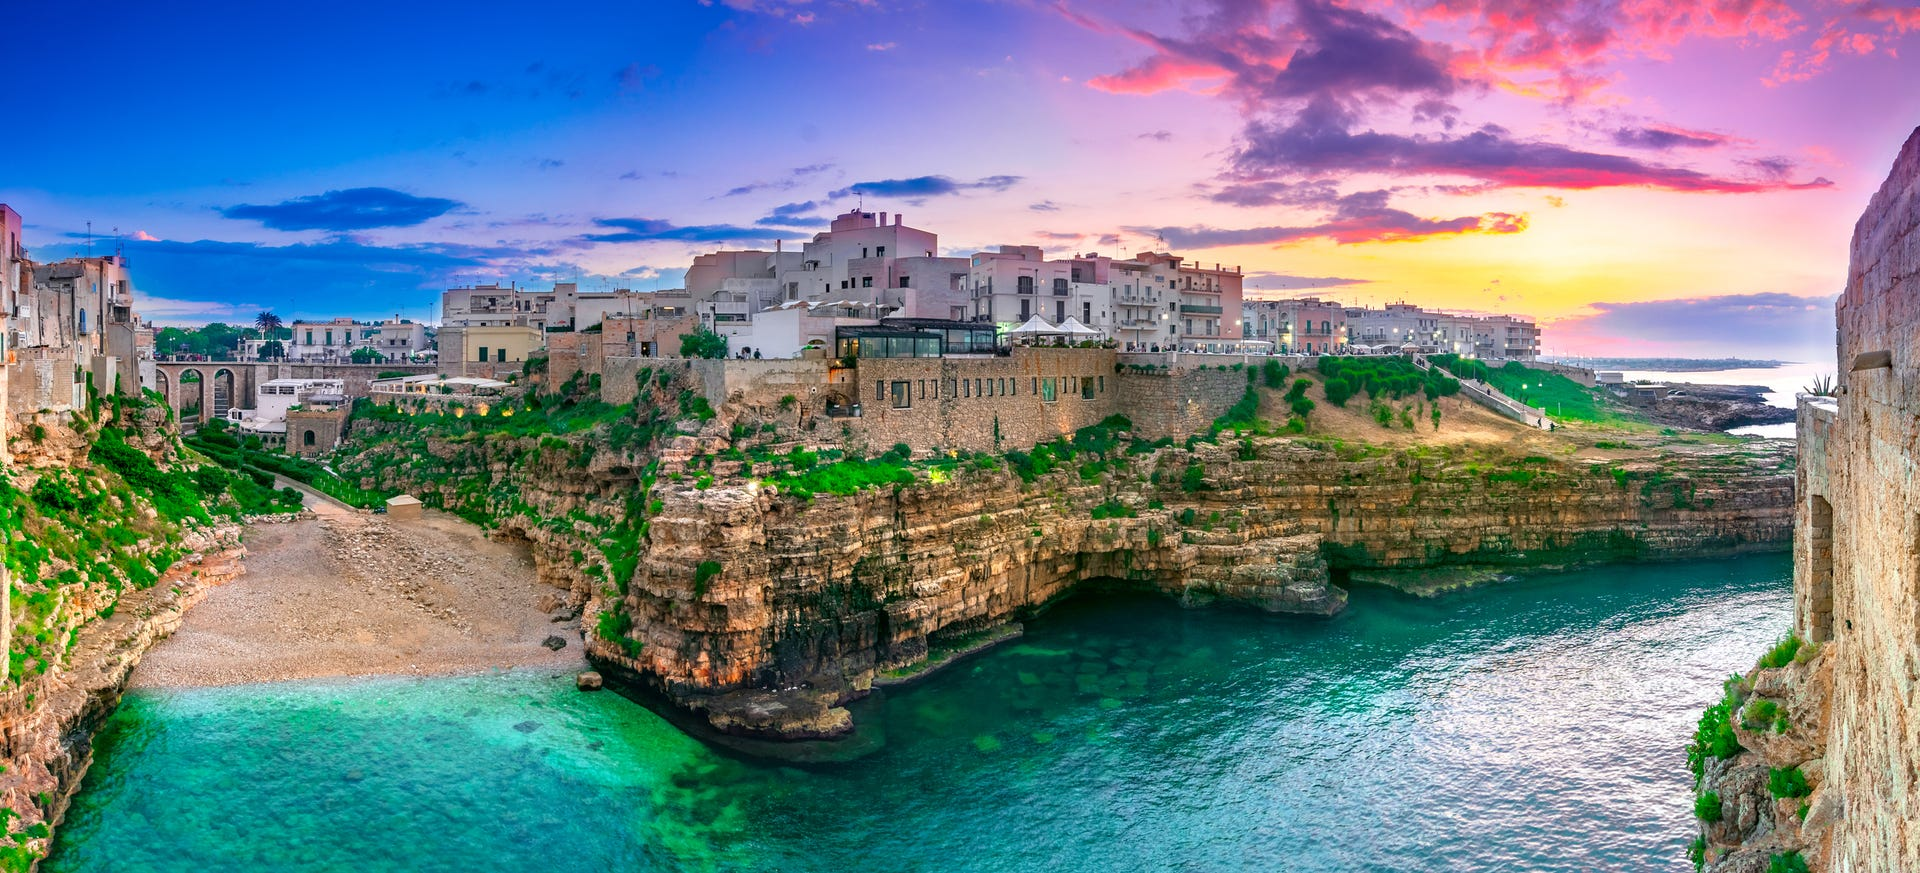 10 places in Europe for a crowd-free vacation